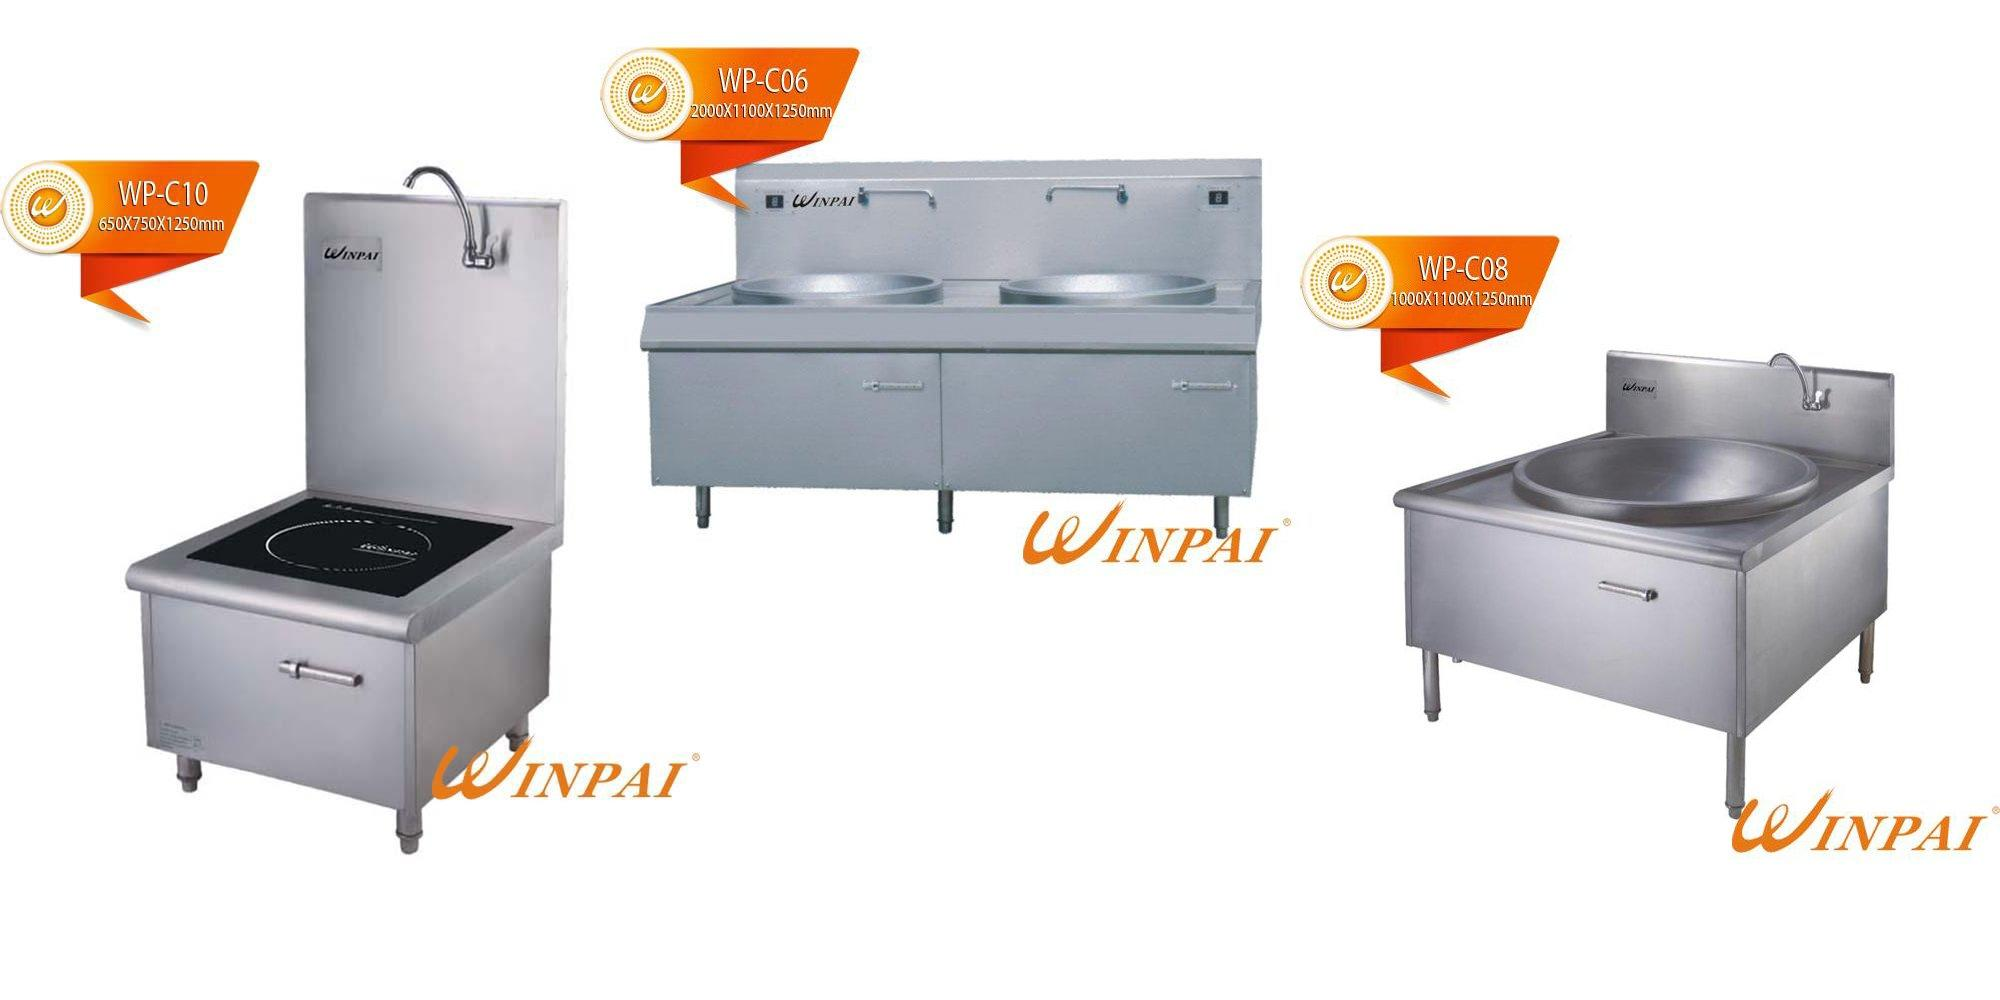 Top induction stove models woks supplier for restaurant-3